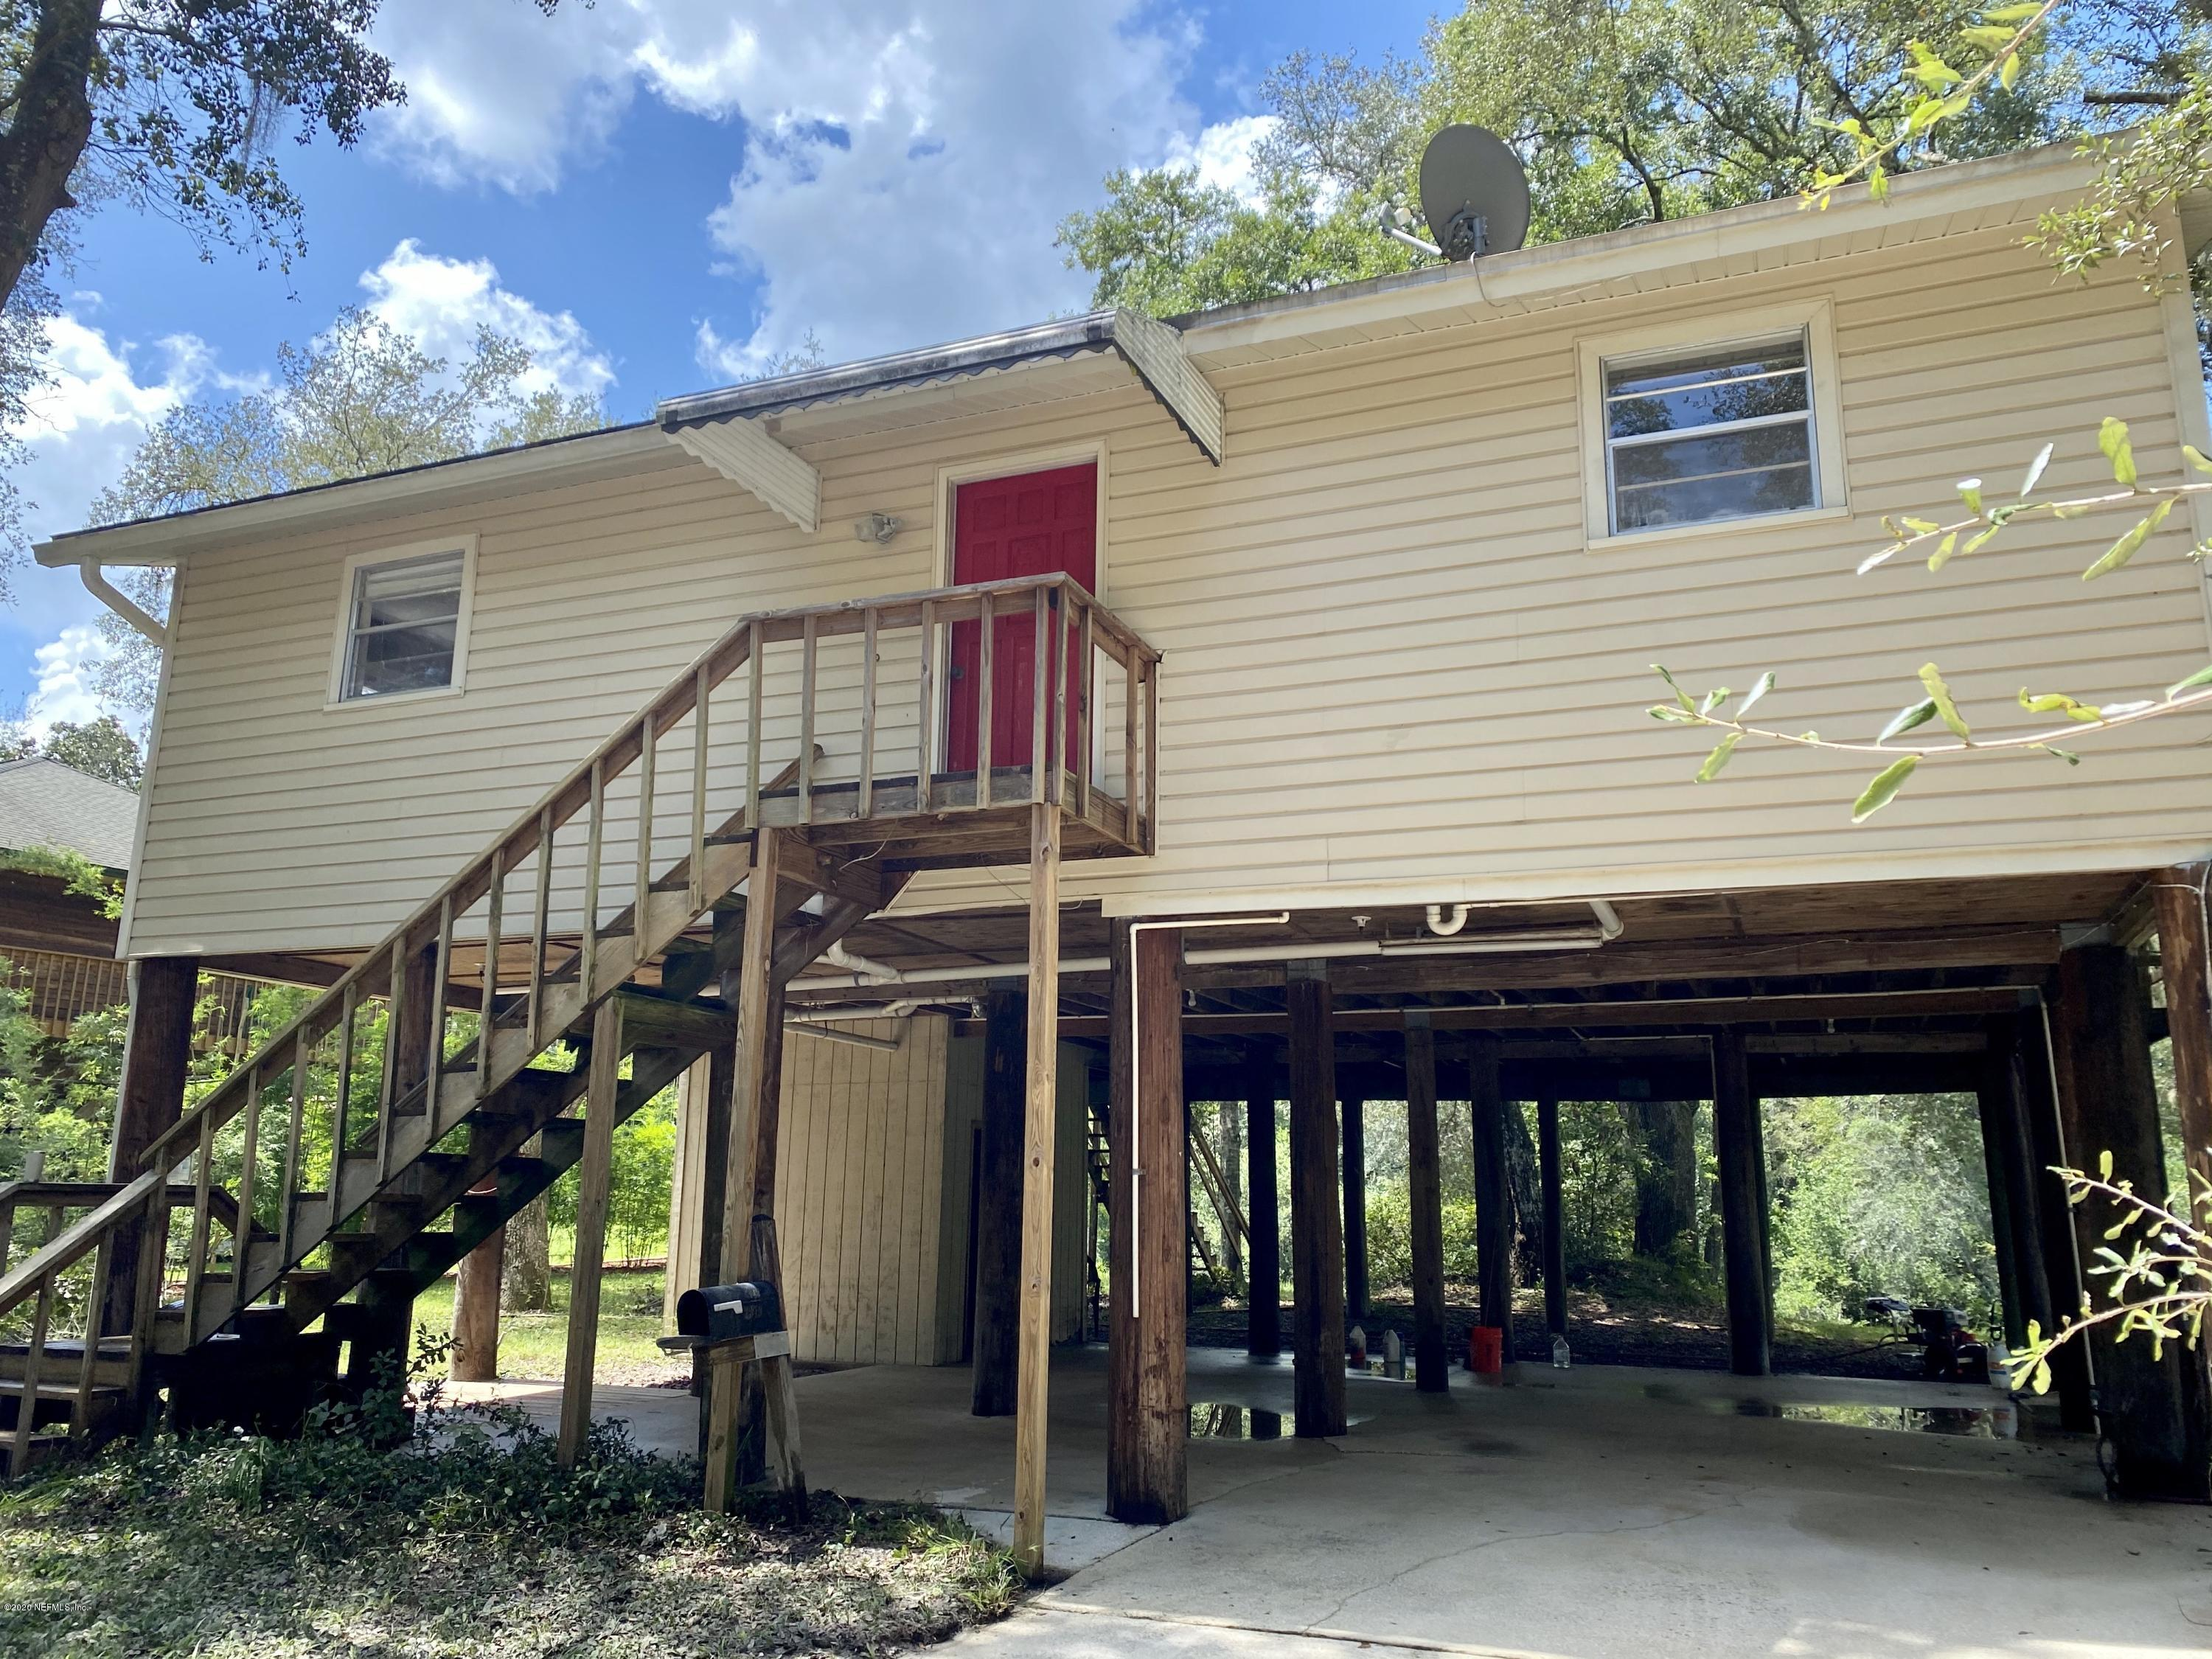 2879 CREEK, MIDDLEBURG, FLORIDA 32068, 2 Bedrooms Bedrooms, ,2 BathroomsBathrooms,Investment / MultiFamily,For sale,CREEK,1072443